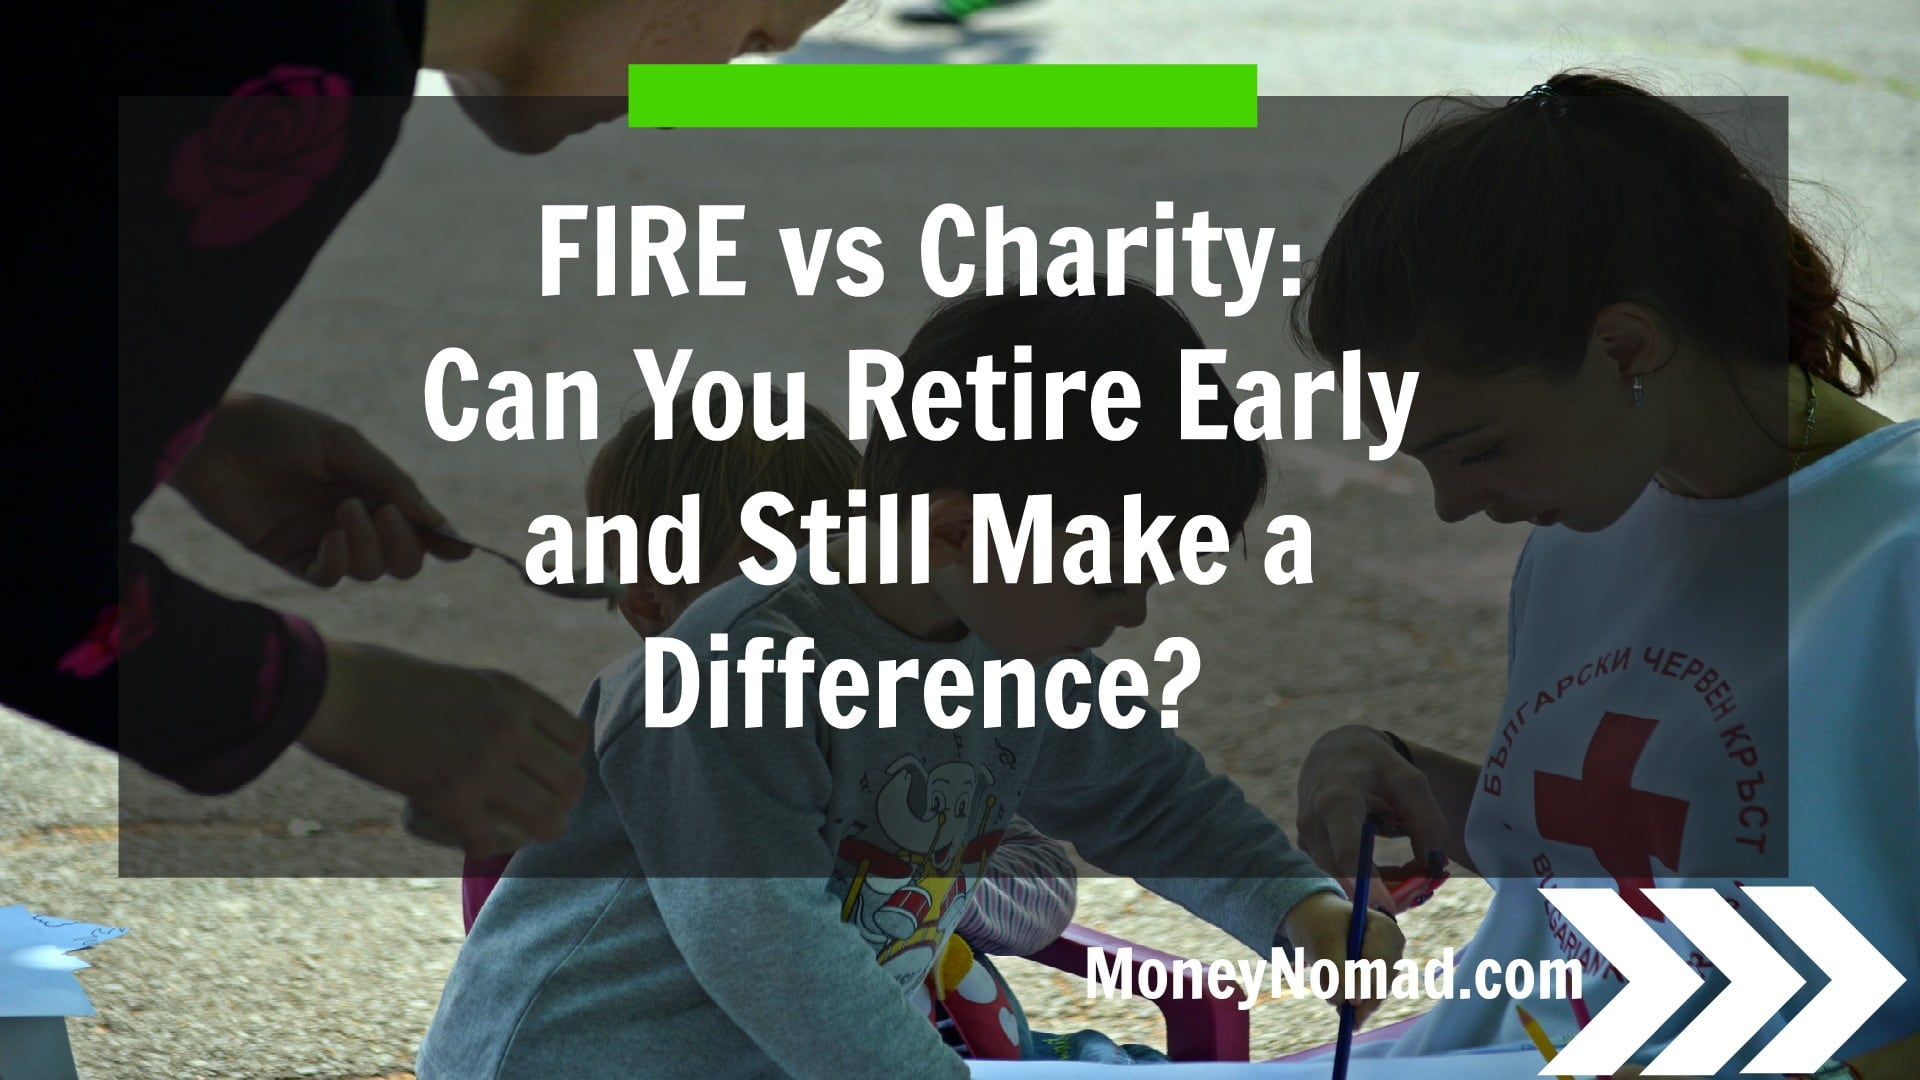 Can you retire early and still make a difference